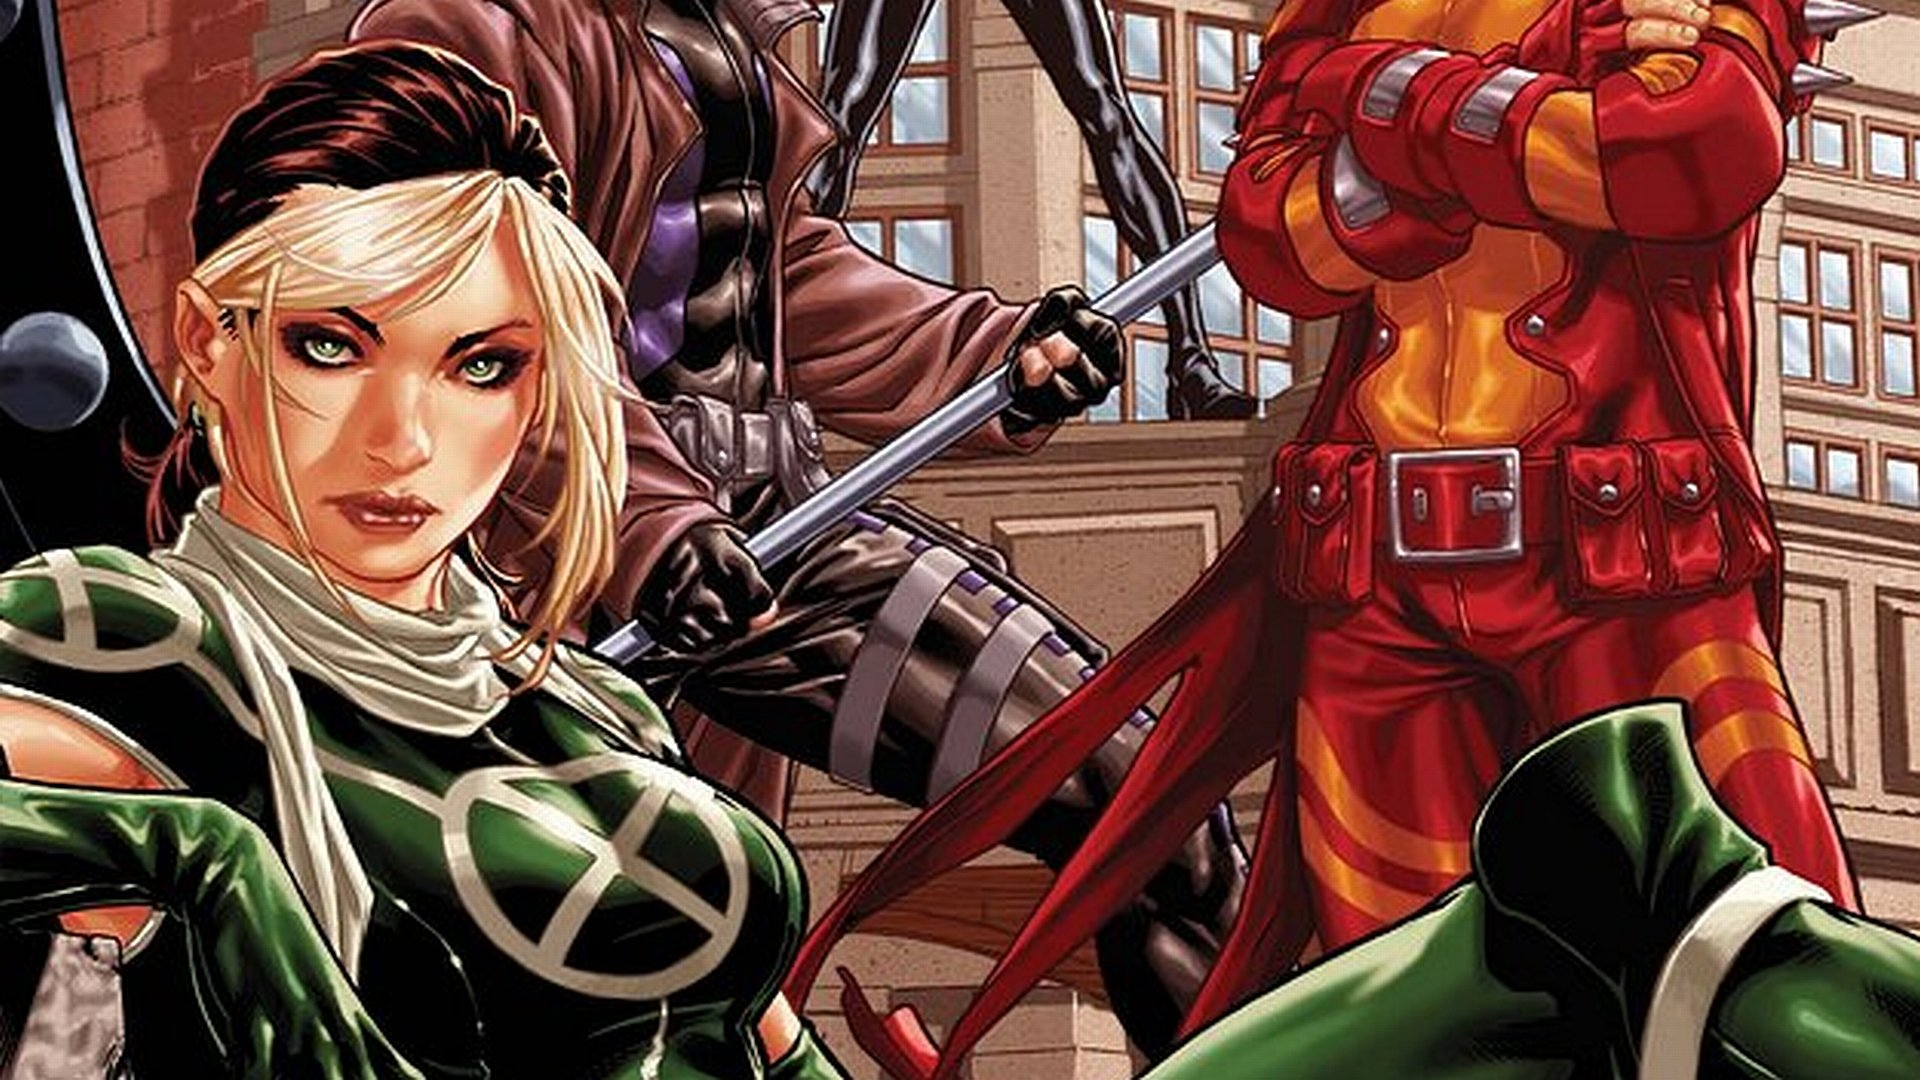 Best Rogue (X-men) wallpaper ID:326665 for High Resolution full hd 1920x1080 PC